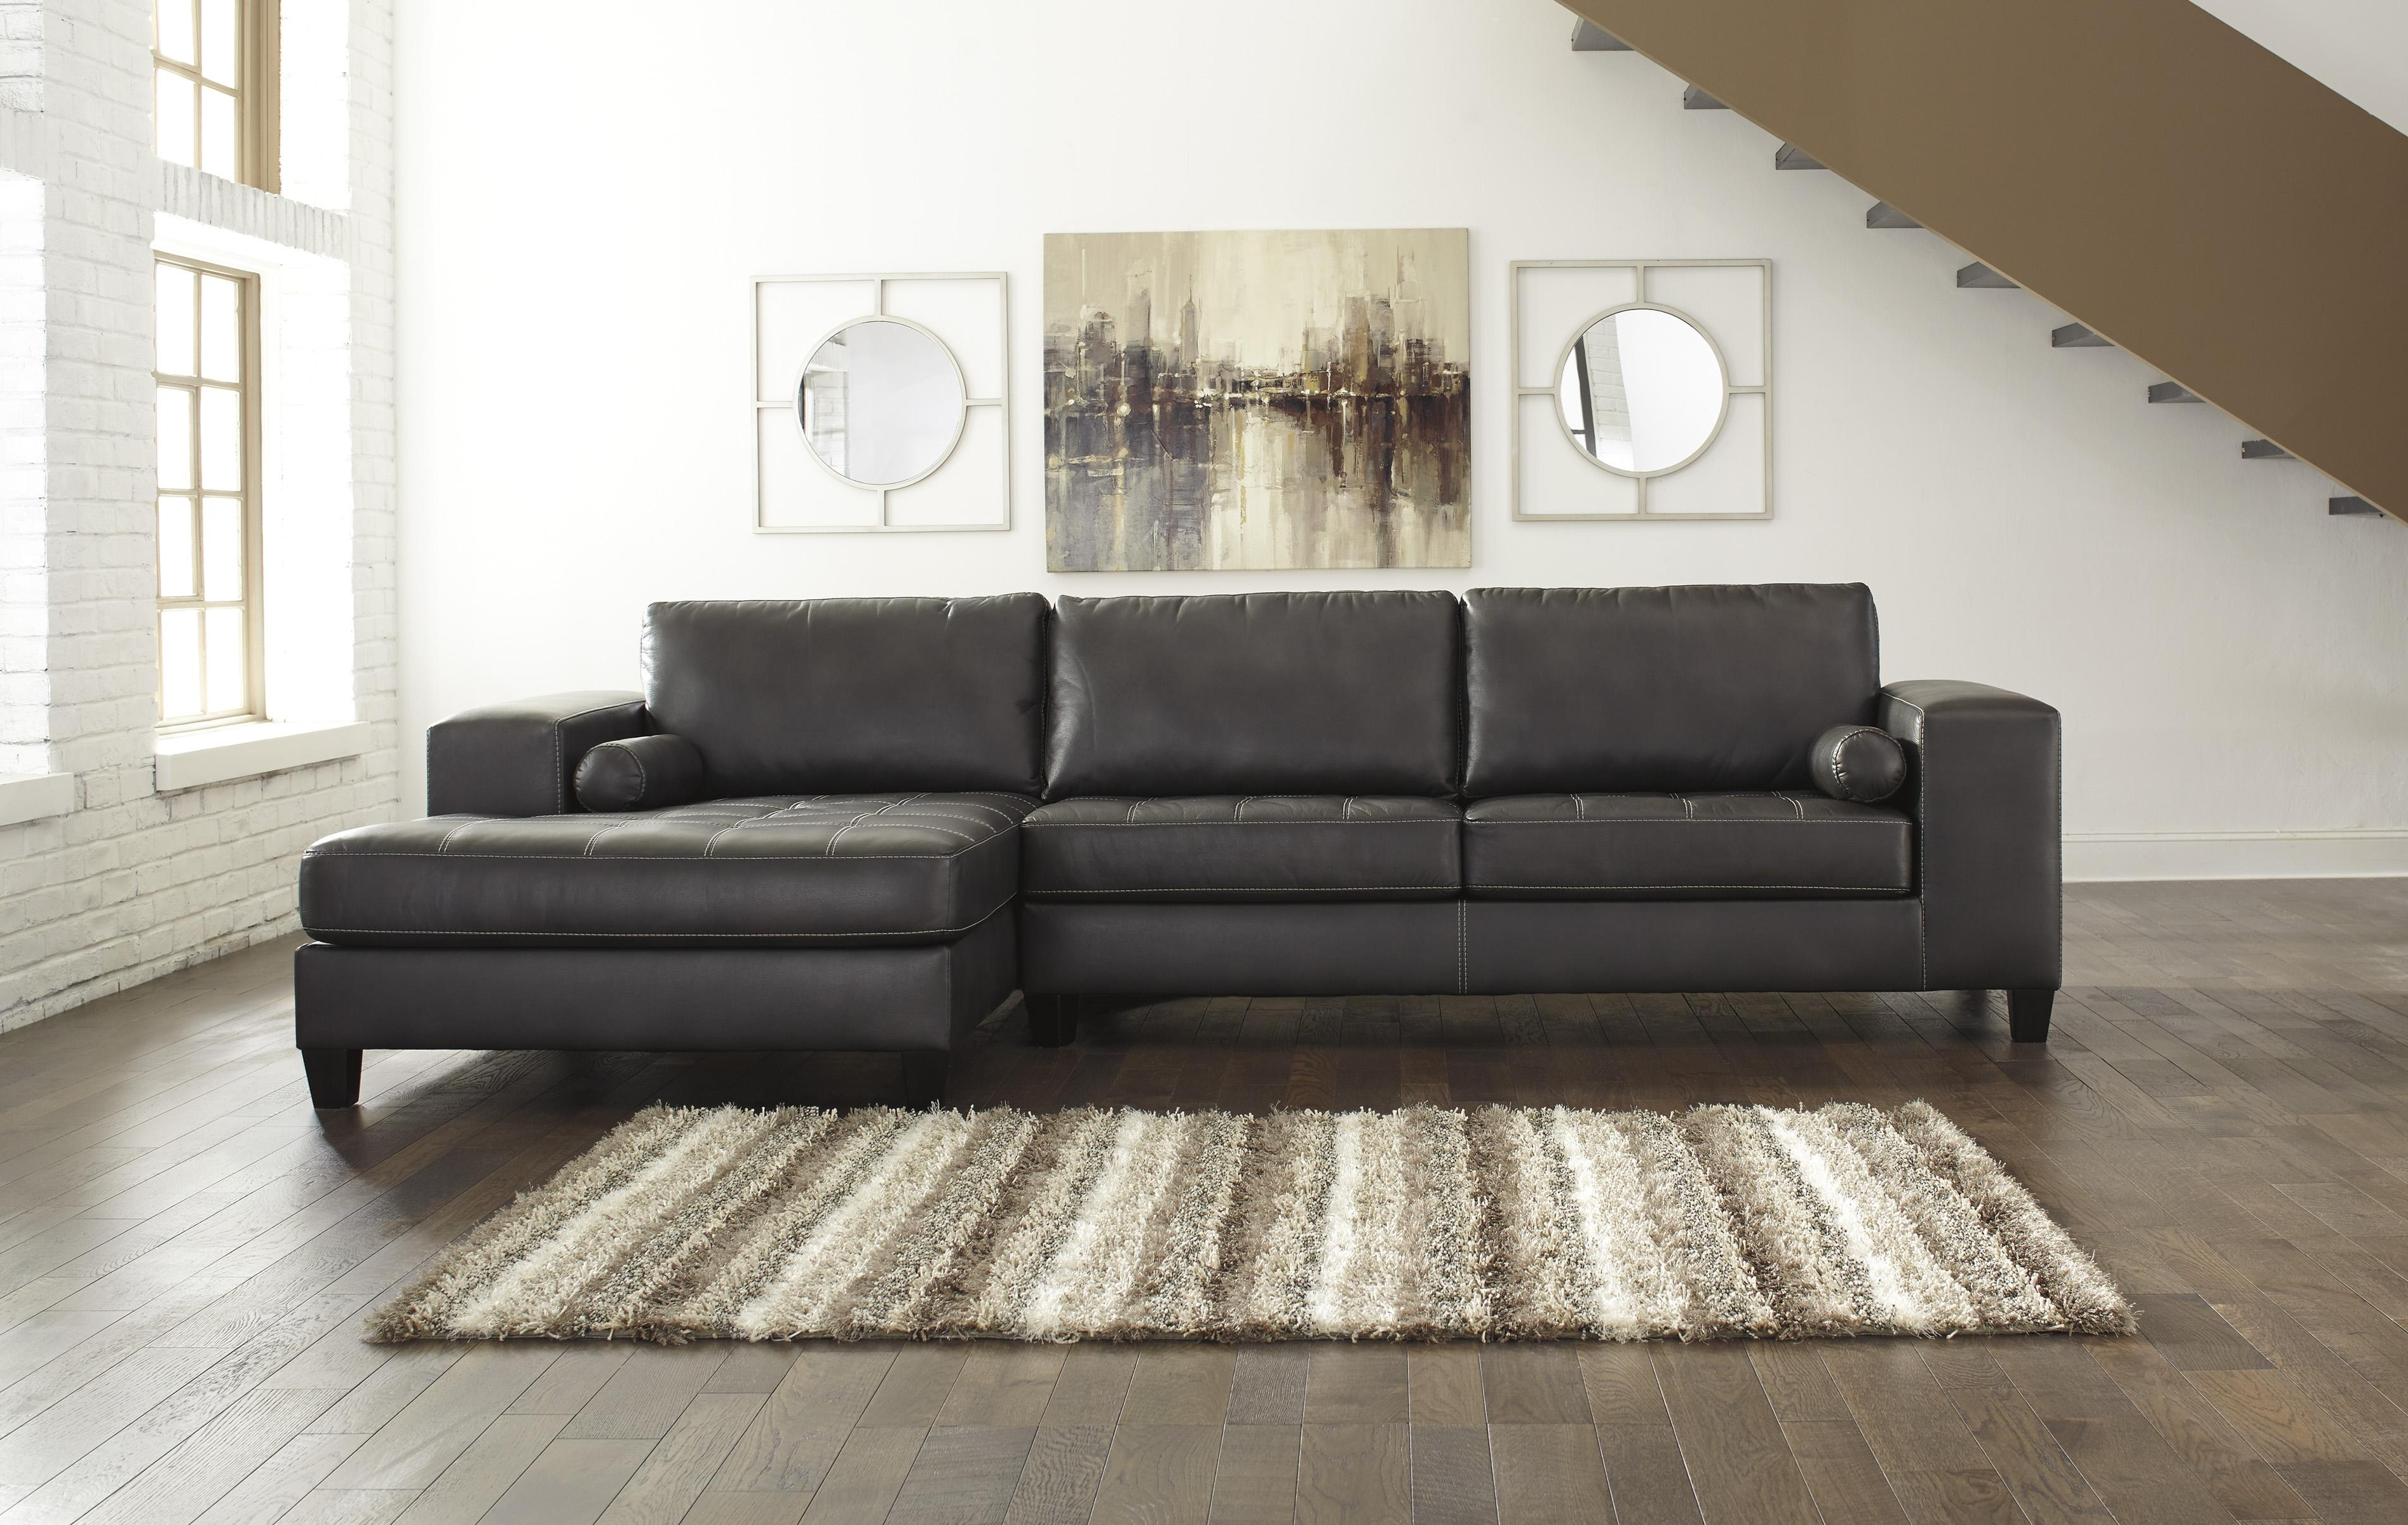 Furniture : Marvelous Ashley Furniture Near Me New Furniture With Regard To Well Known Homemakers Sectional Sofas (View 6 of 20)